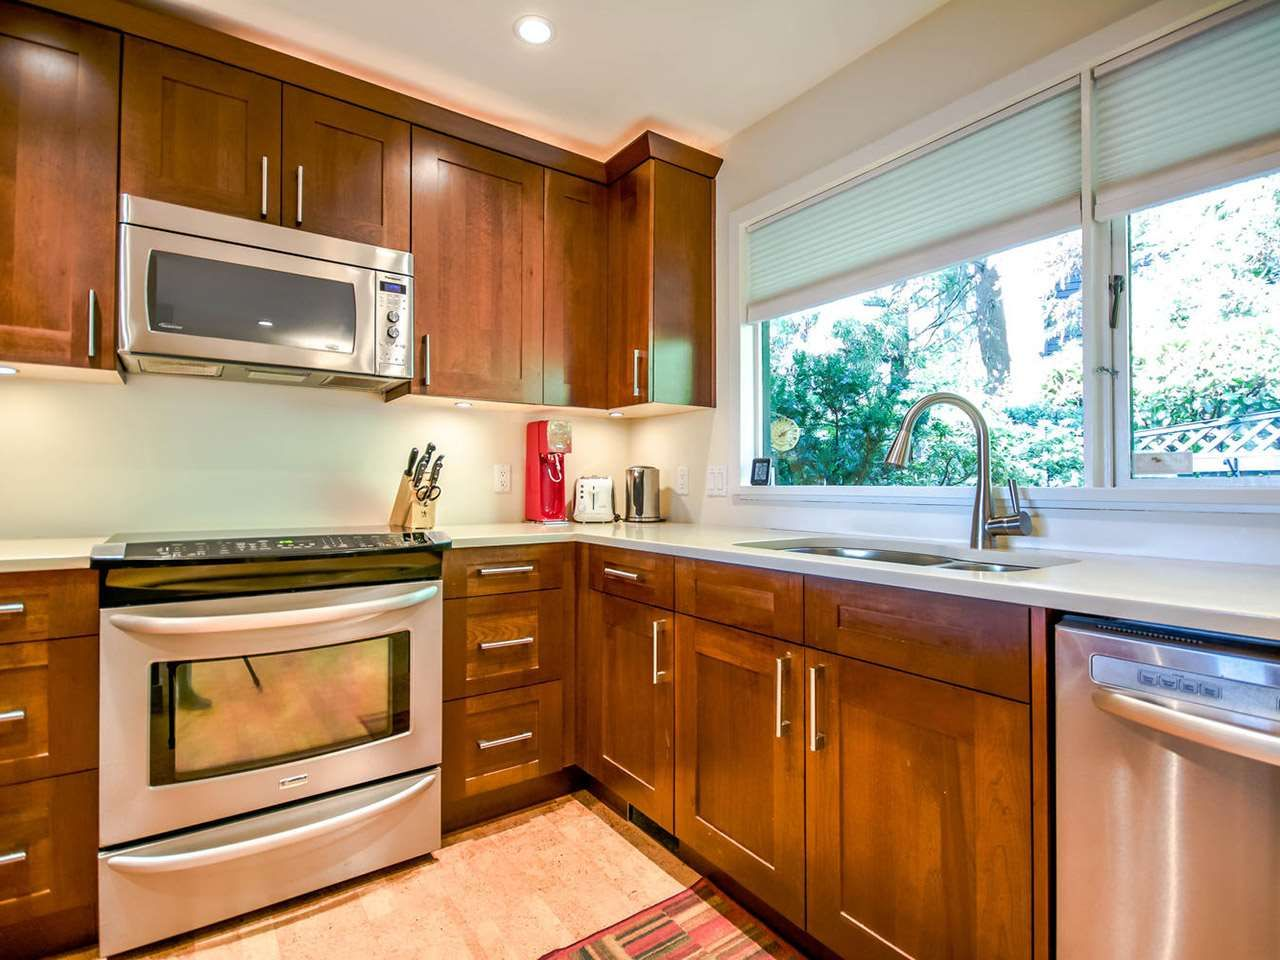 """Main Photo: 1036 LILLOOET Road in North Vancouver: Lynnmour Townhouse for sale in """"Lillooet Place"""" : MLS®# R2061243"""